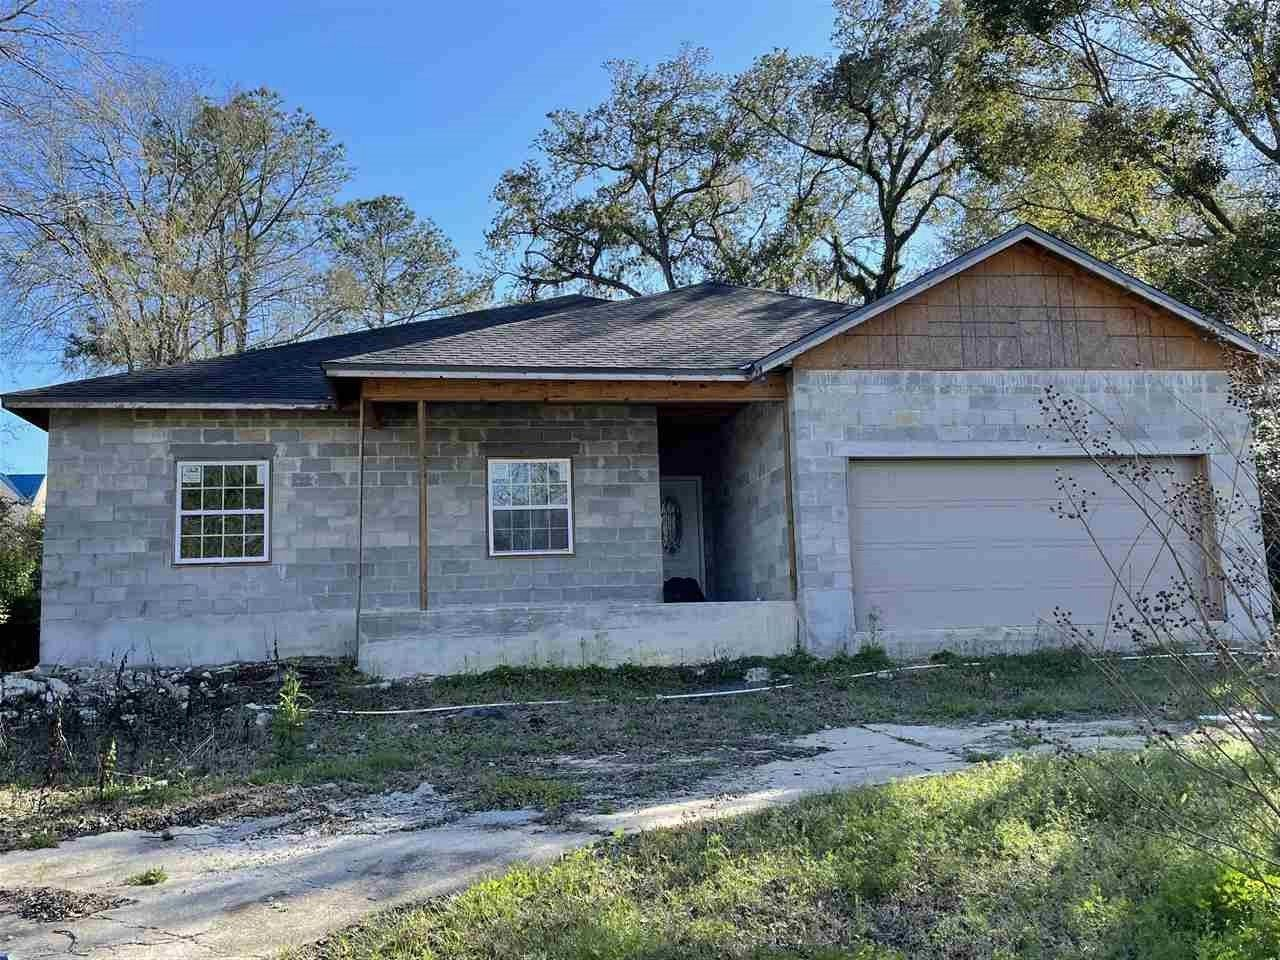 Photo of 3087 GOVERNORS COURT Drive, TALLAHASSEE, FL 32301 (MLS # 328604)